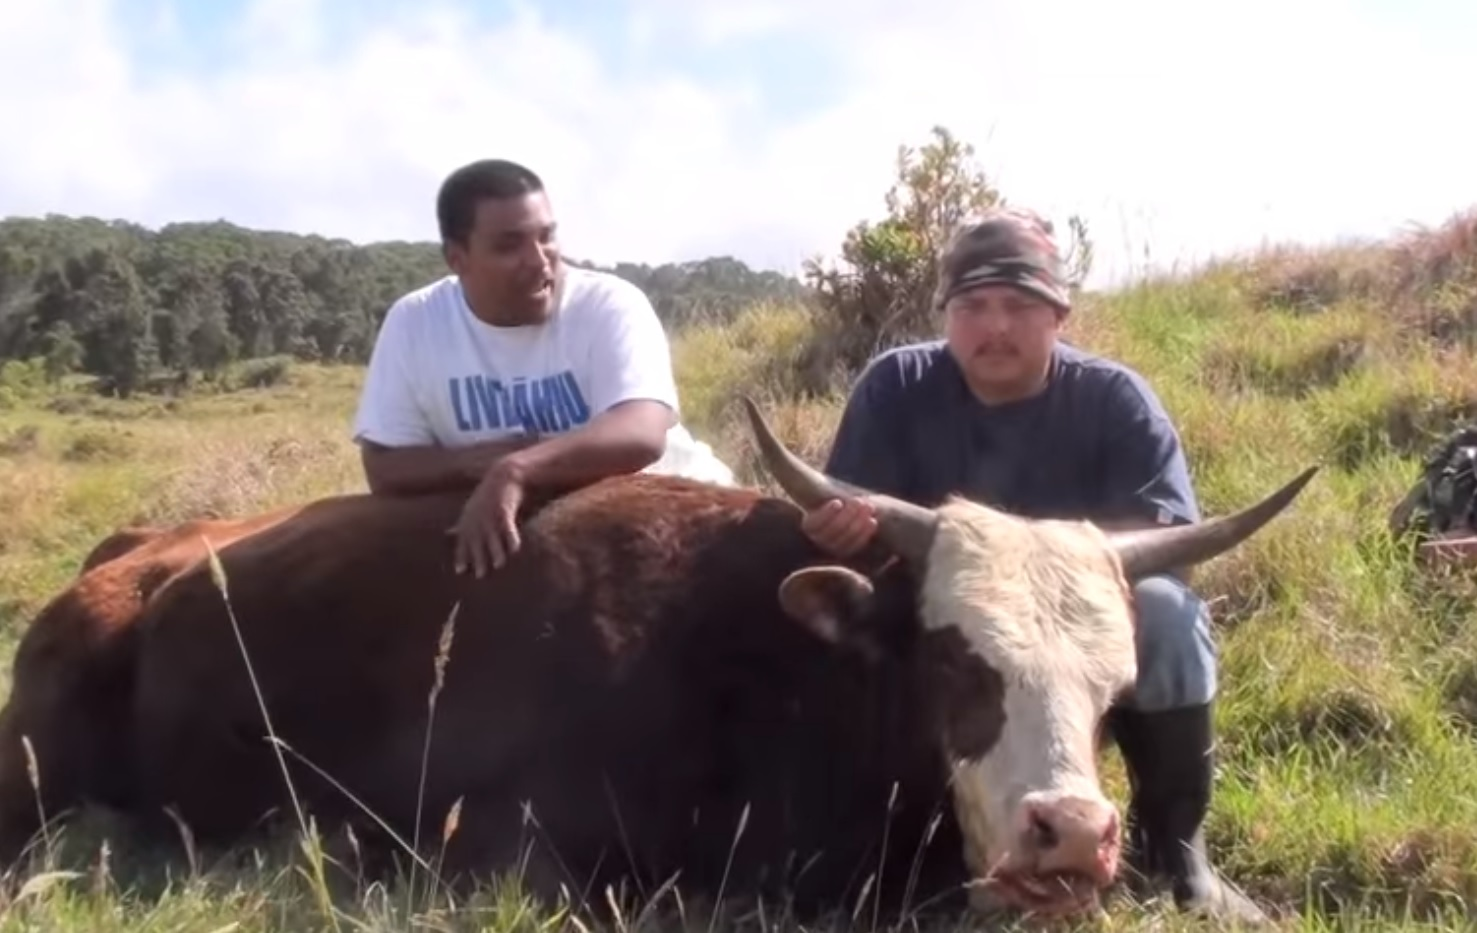 Strange stories about cows